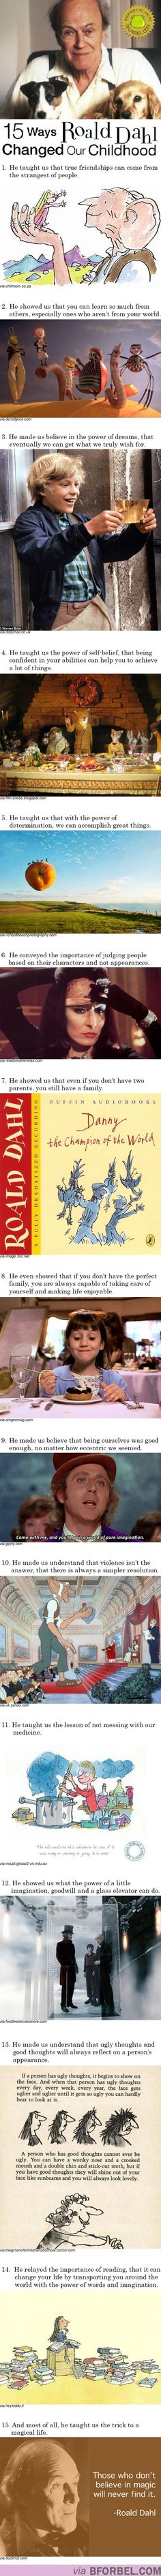 15 Ways Roald Dahl Changed Our Childhood… Happy Roald Dahl Day!